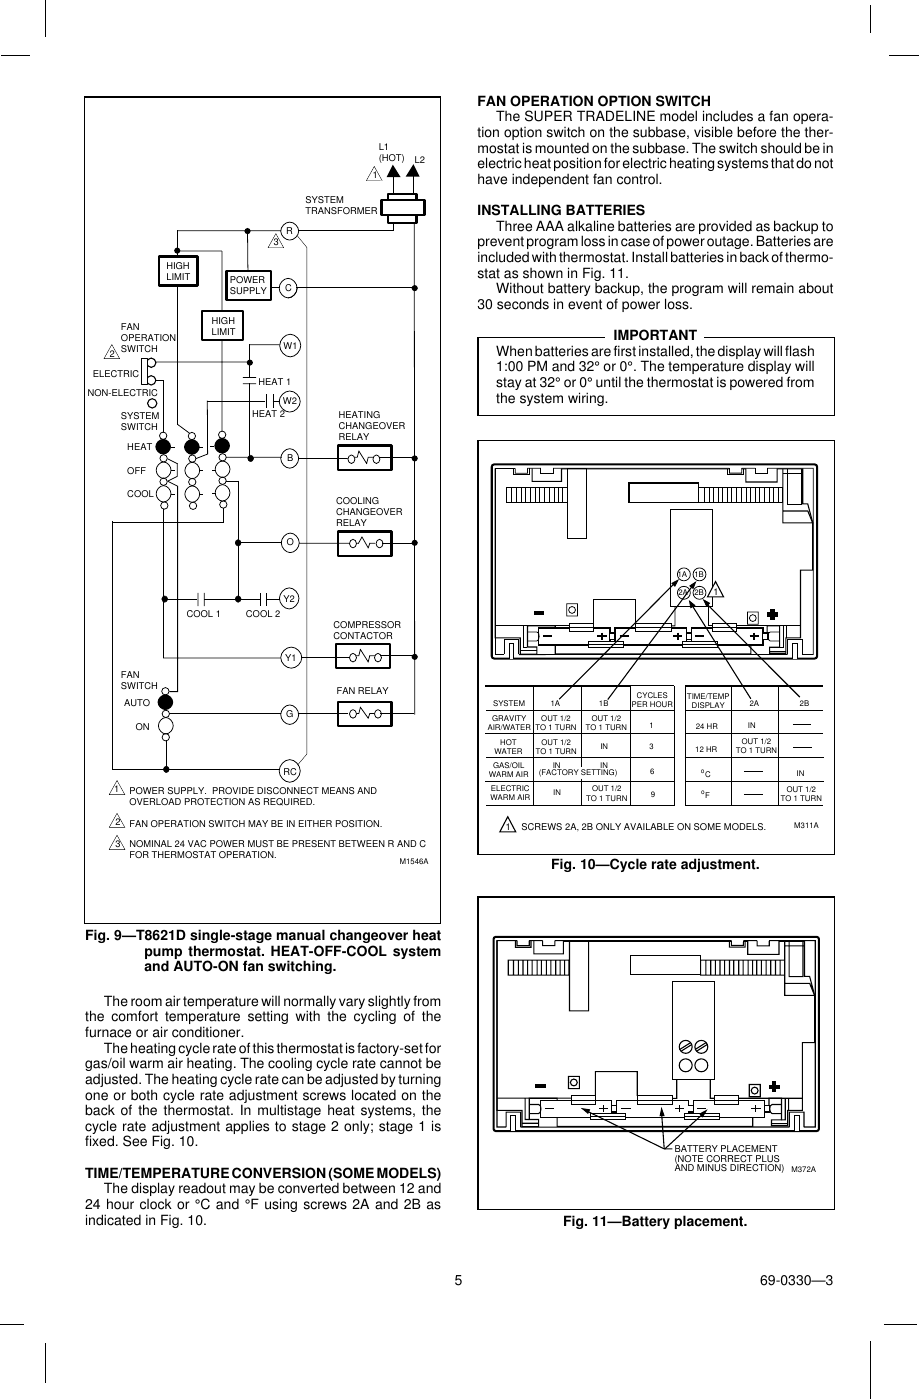 Chronotherm Iii Manual User Guide Books Review Taco 1632 Wiring Diagram Electrical Diagrams Honeywell And Schematics Installation